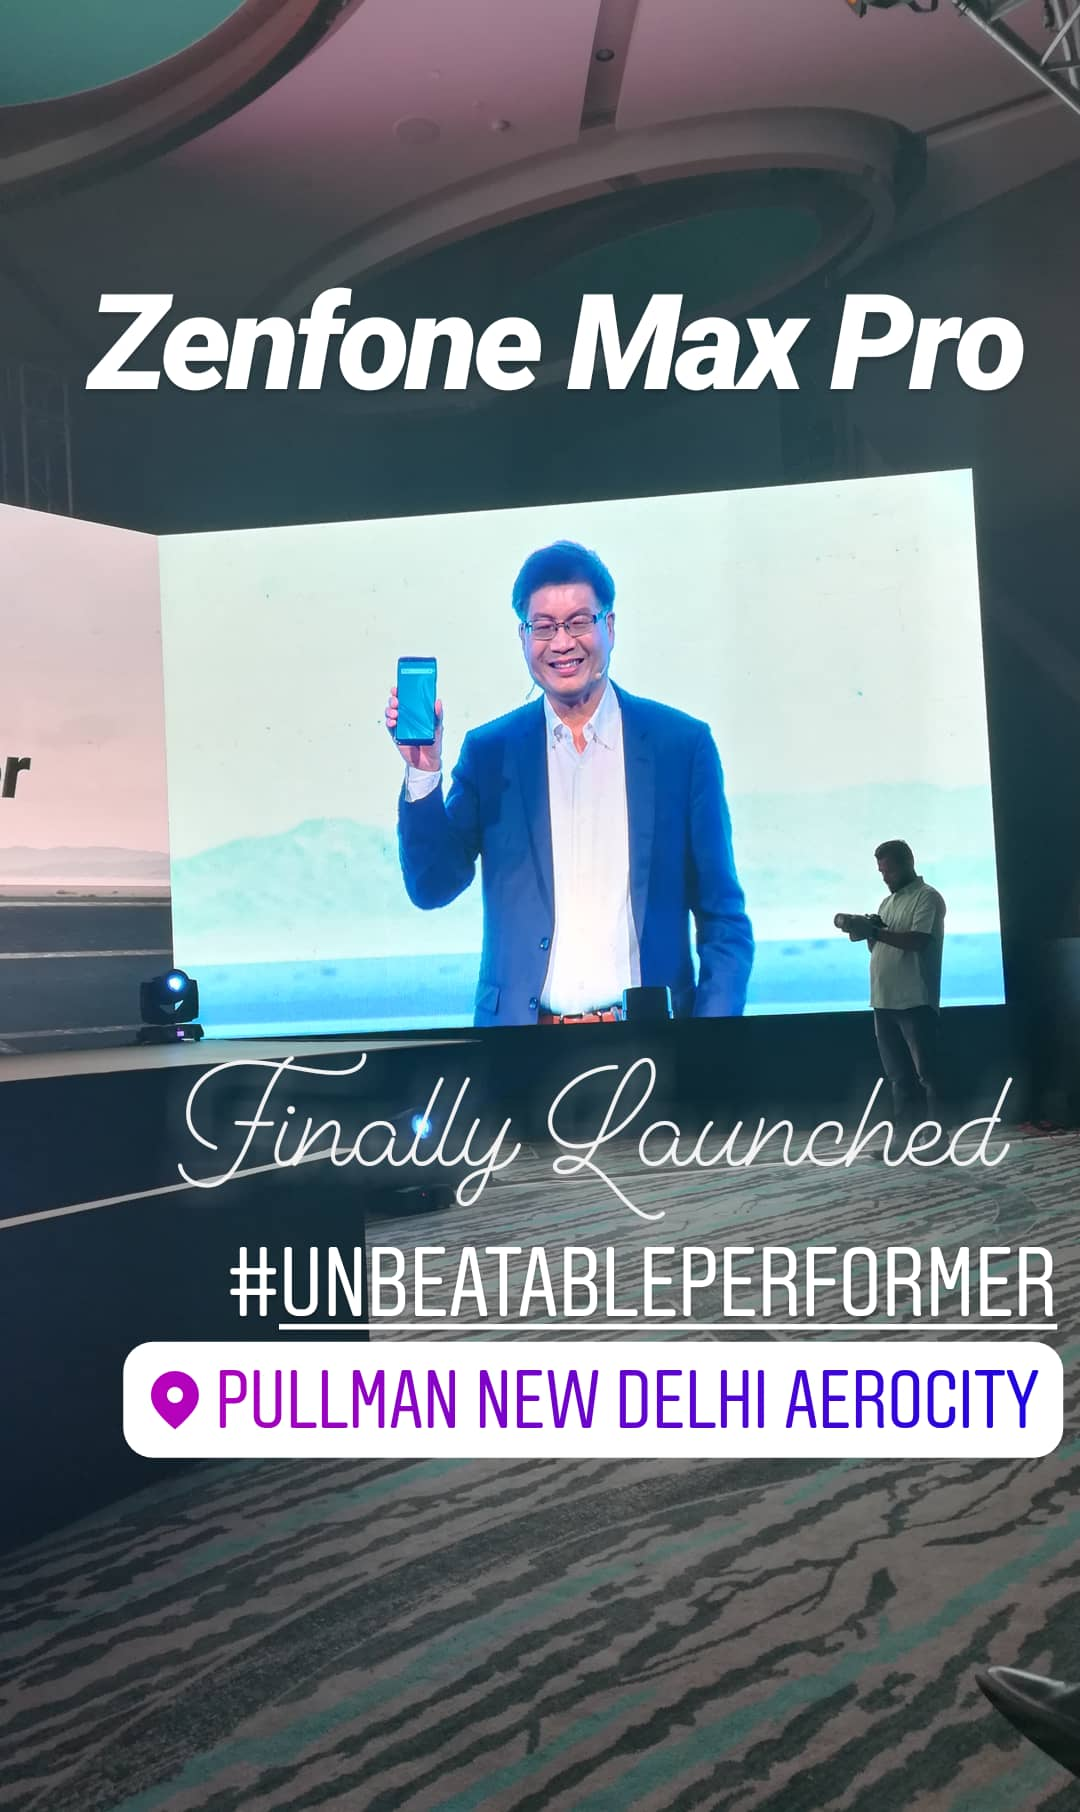 Beat Others With #UnbeatablePerformer - Asus Zenfone Max Pro